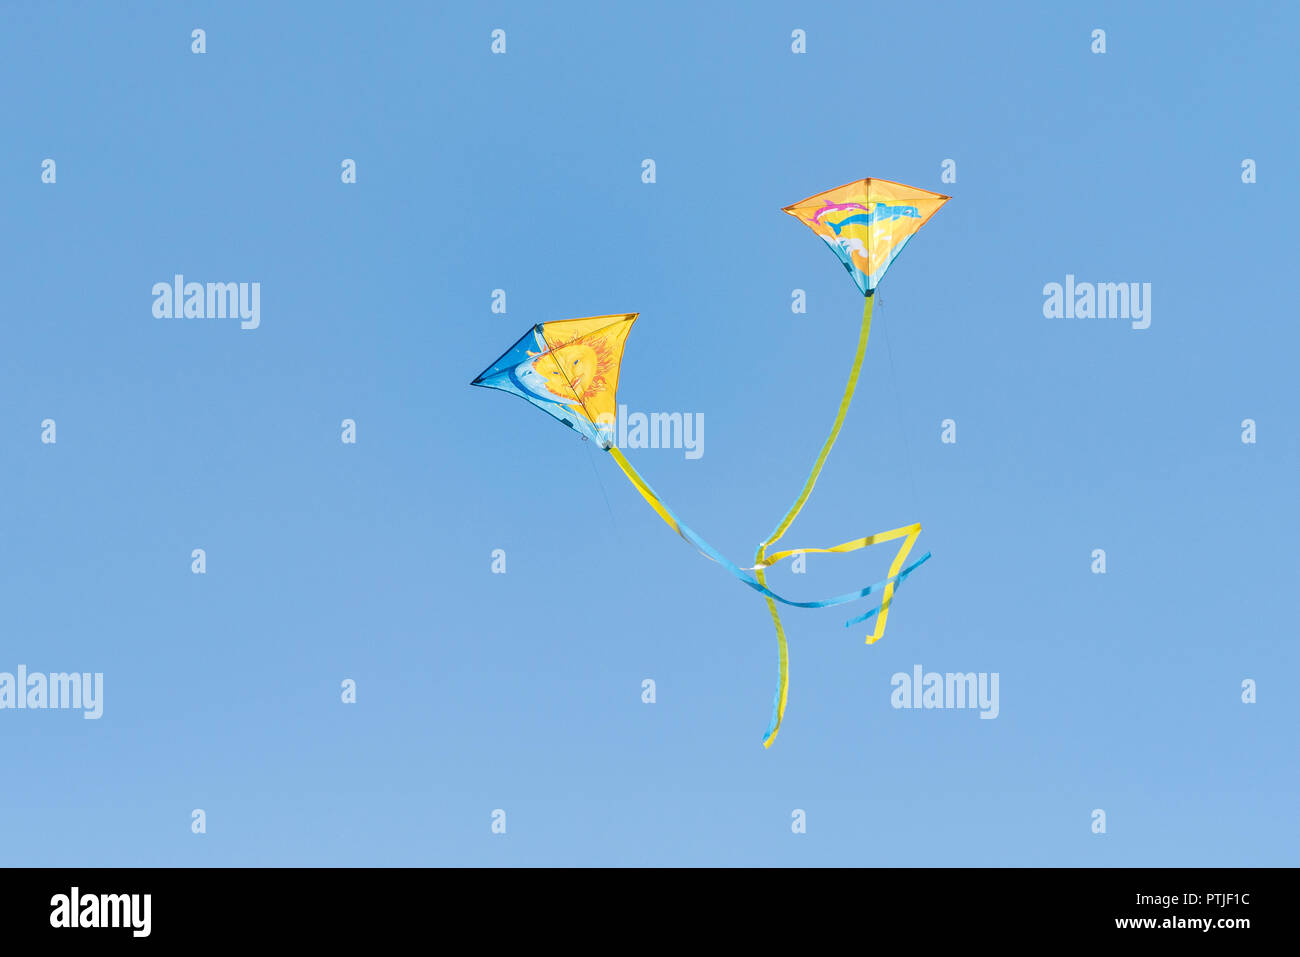 Two colourful kites flying against a cloudless blue sky. - Stock Image